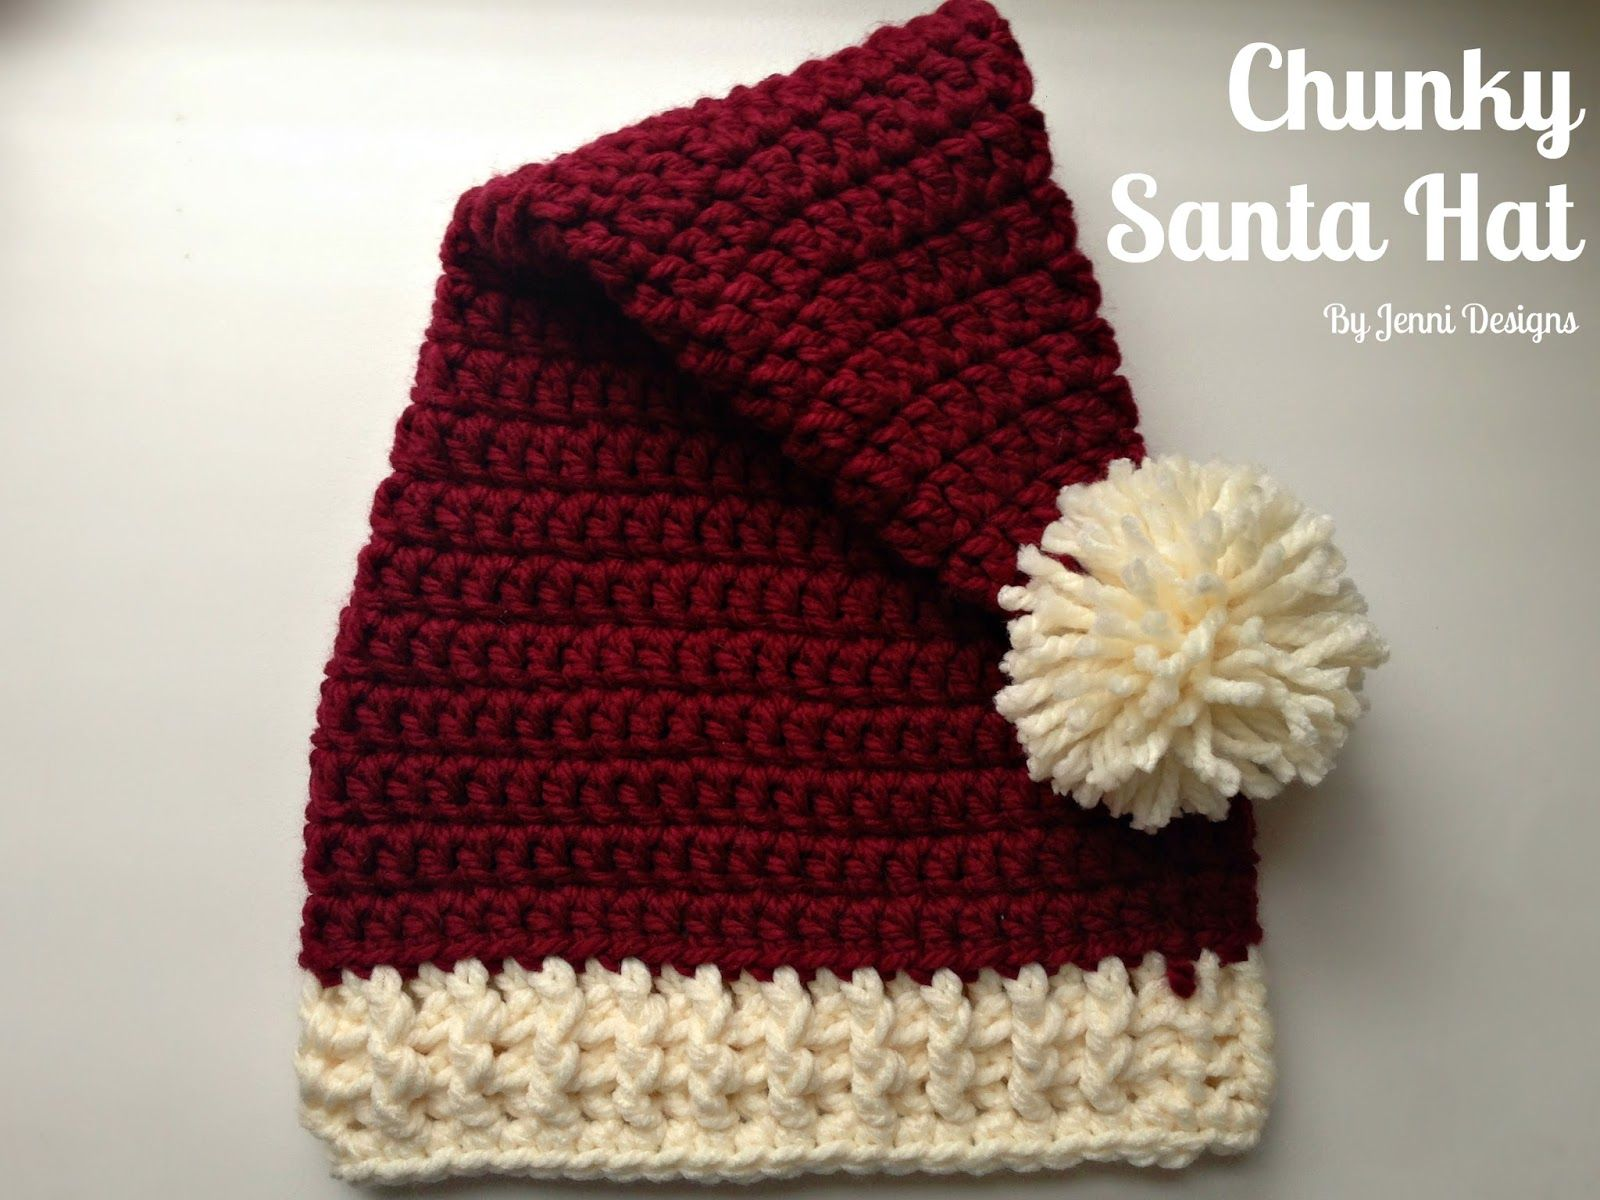 Free Crochet Pattern: Chunky Santa Hat in 4 sizes | Crochet Hats ...